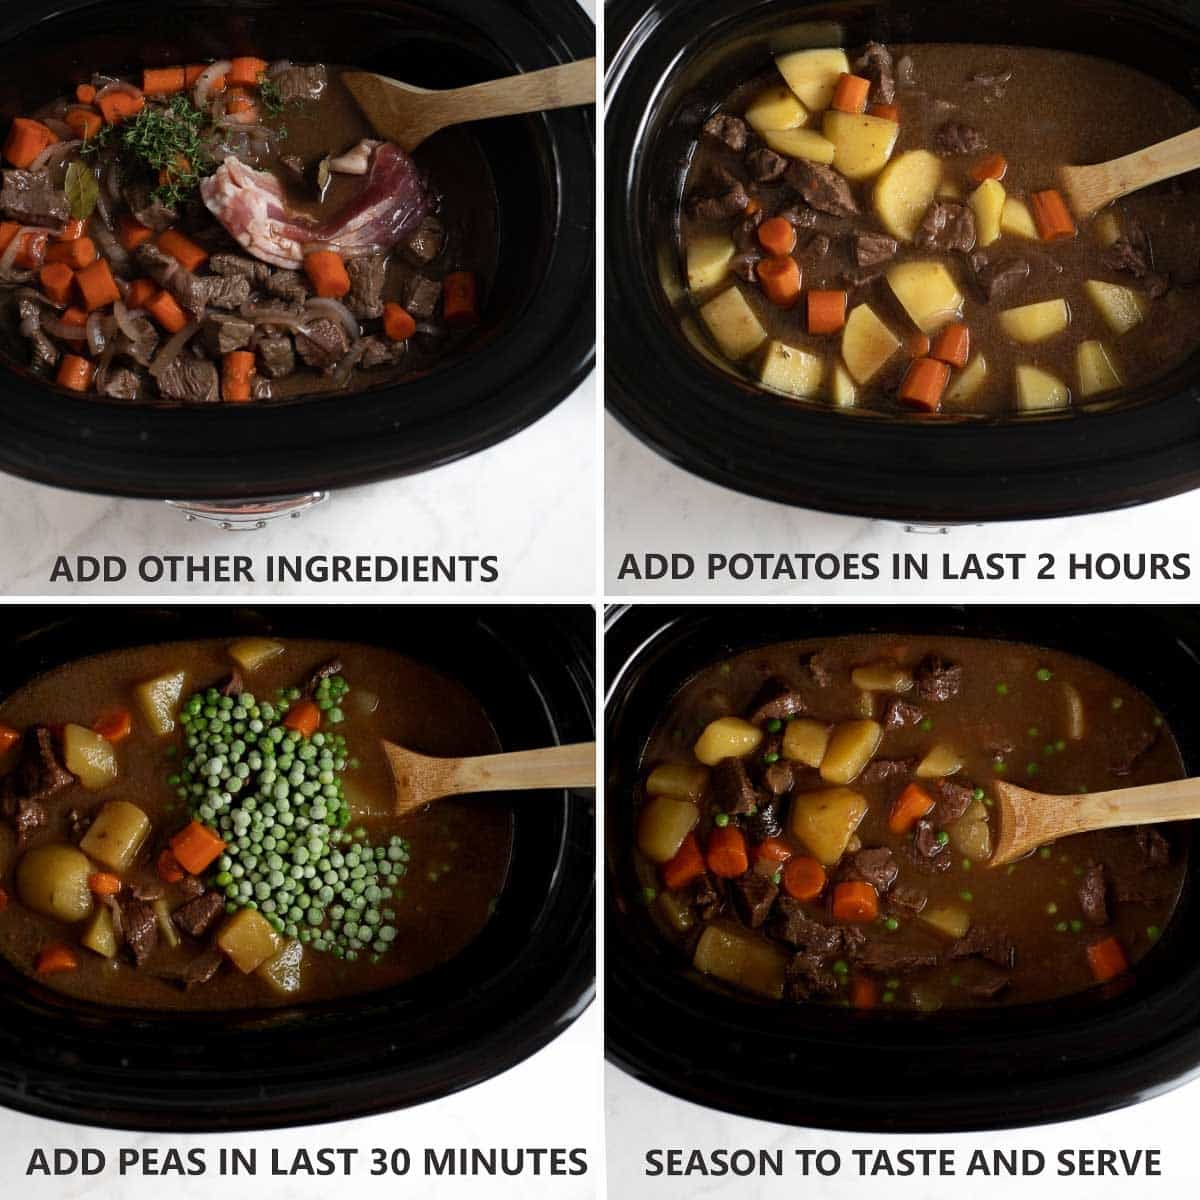 steps to finishing cooking gluten-free beef stew in the slow cooker